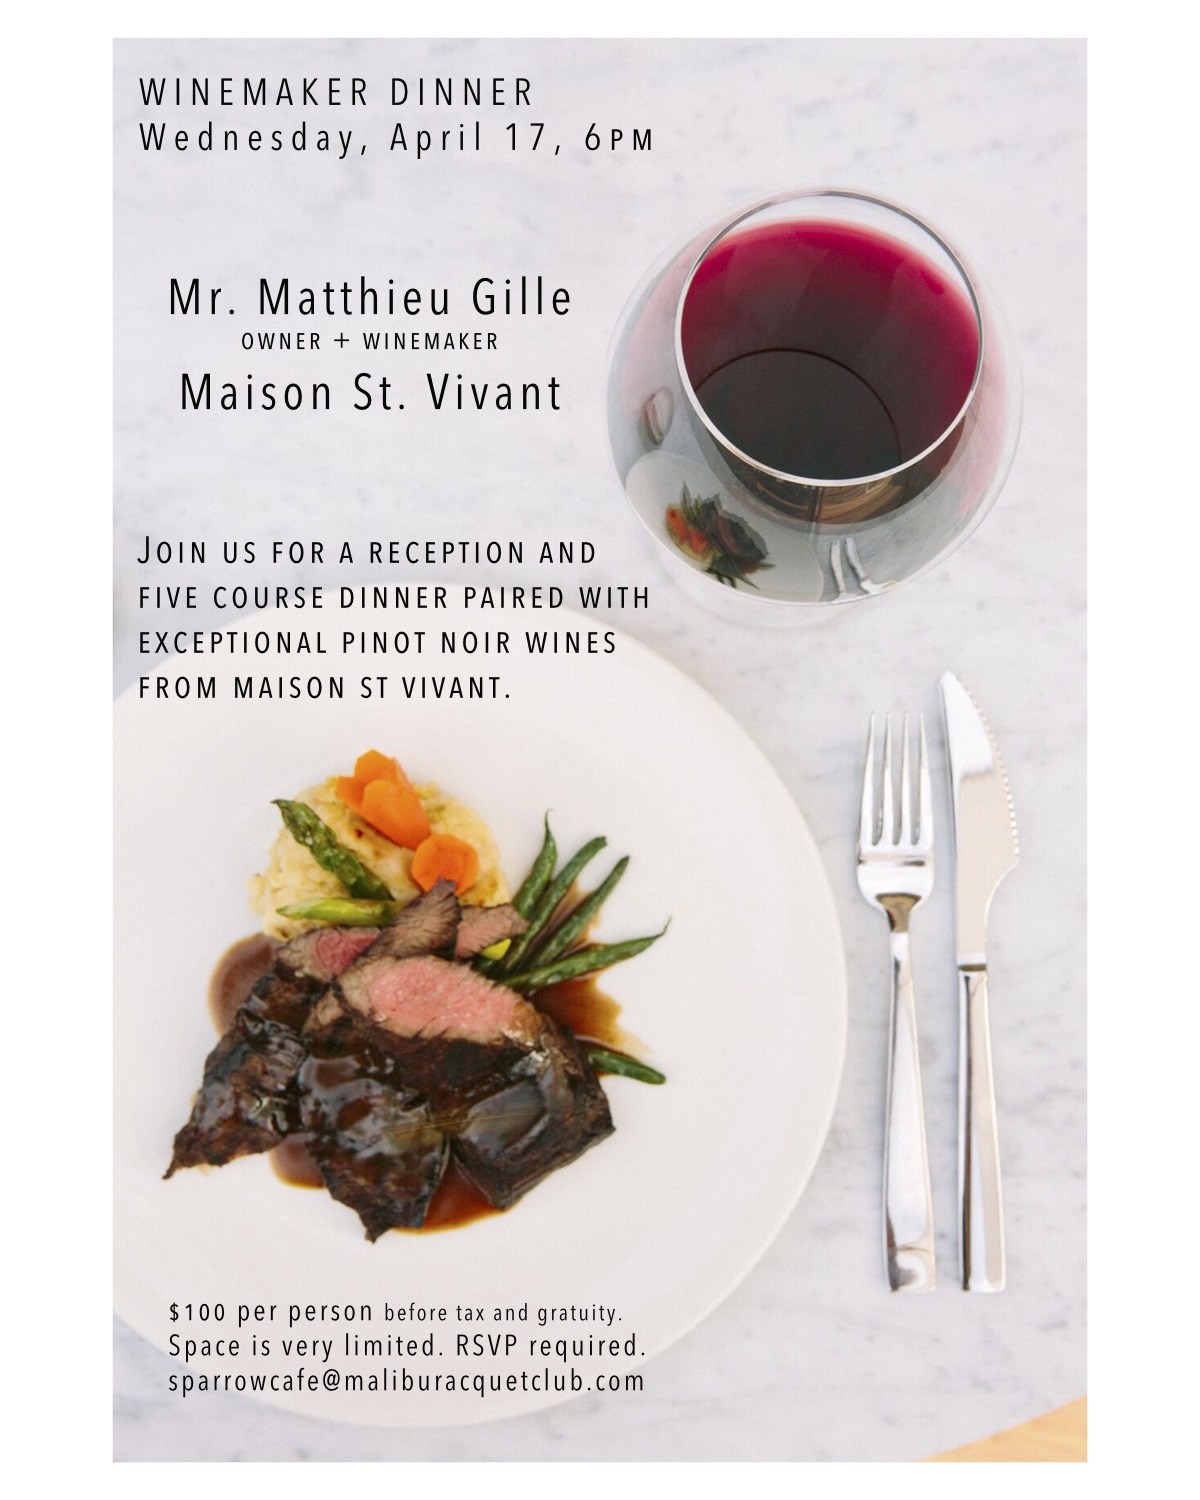 Winemaker Dinner-Maison St Vivant.jpg